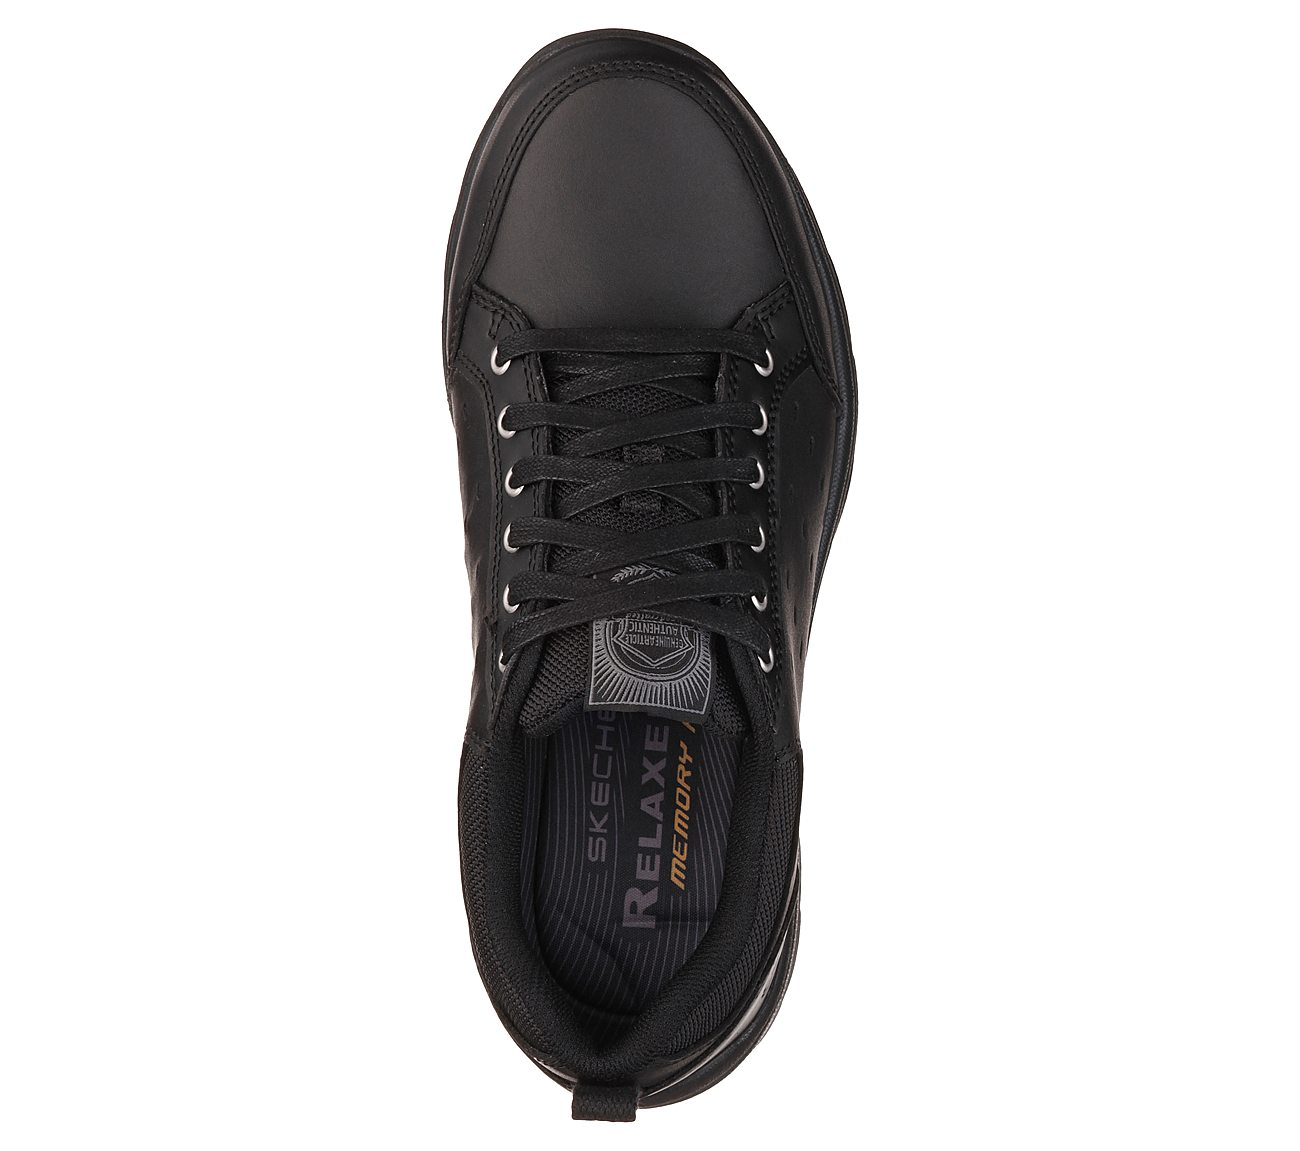 Buy SKECHERS Relaxed Fit Superior  Emens Modern Comfort Shoes only 7500